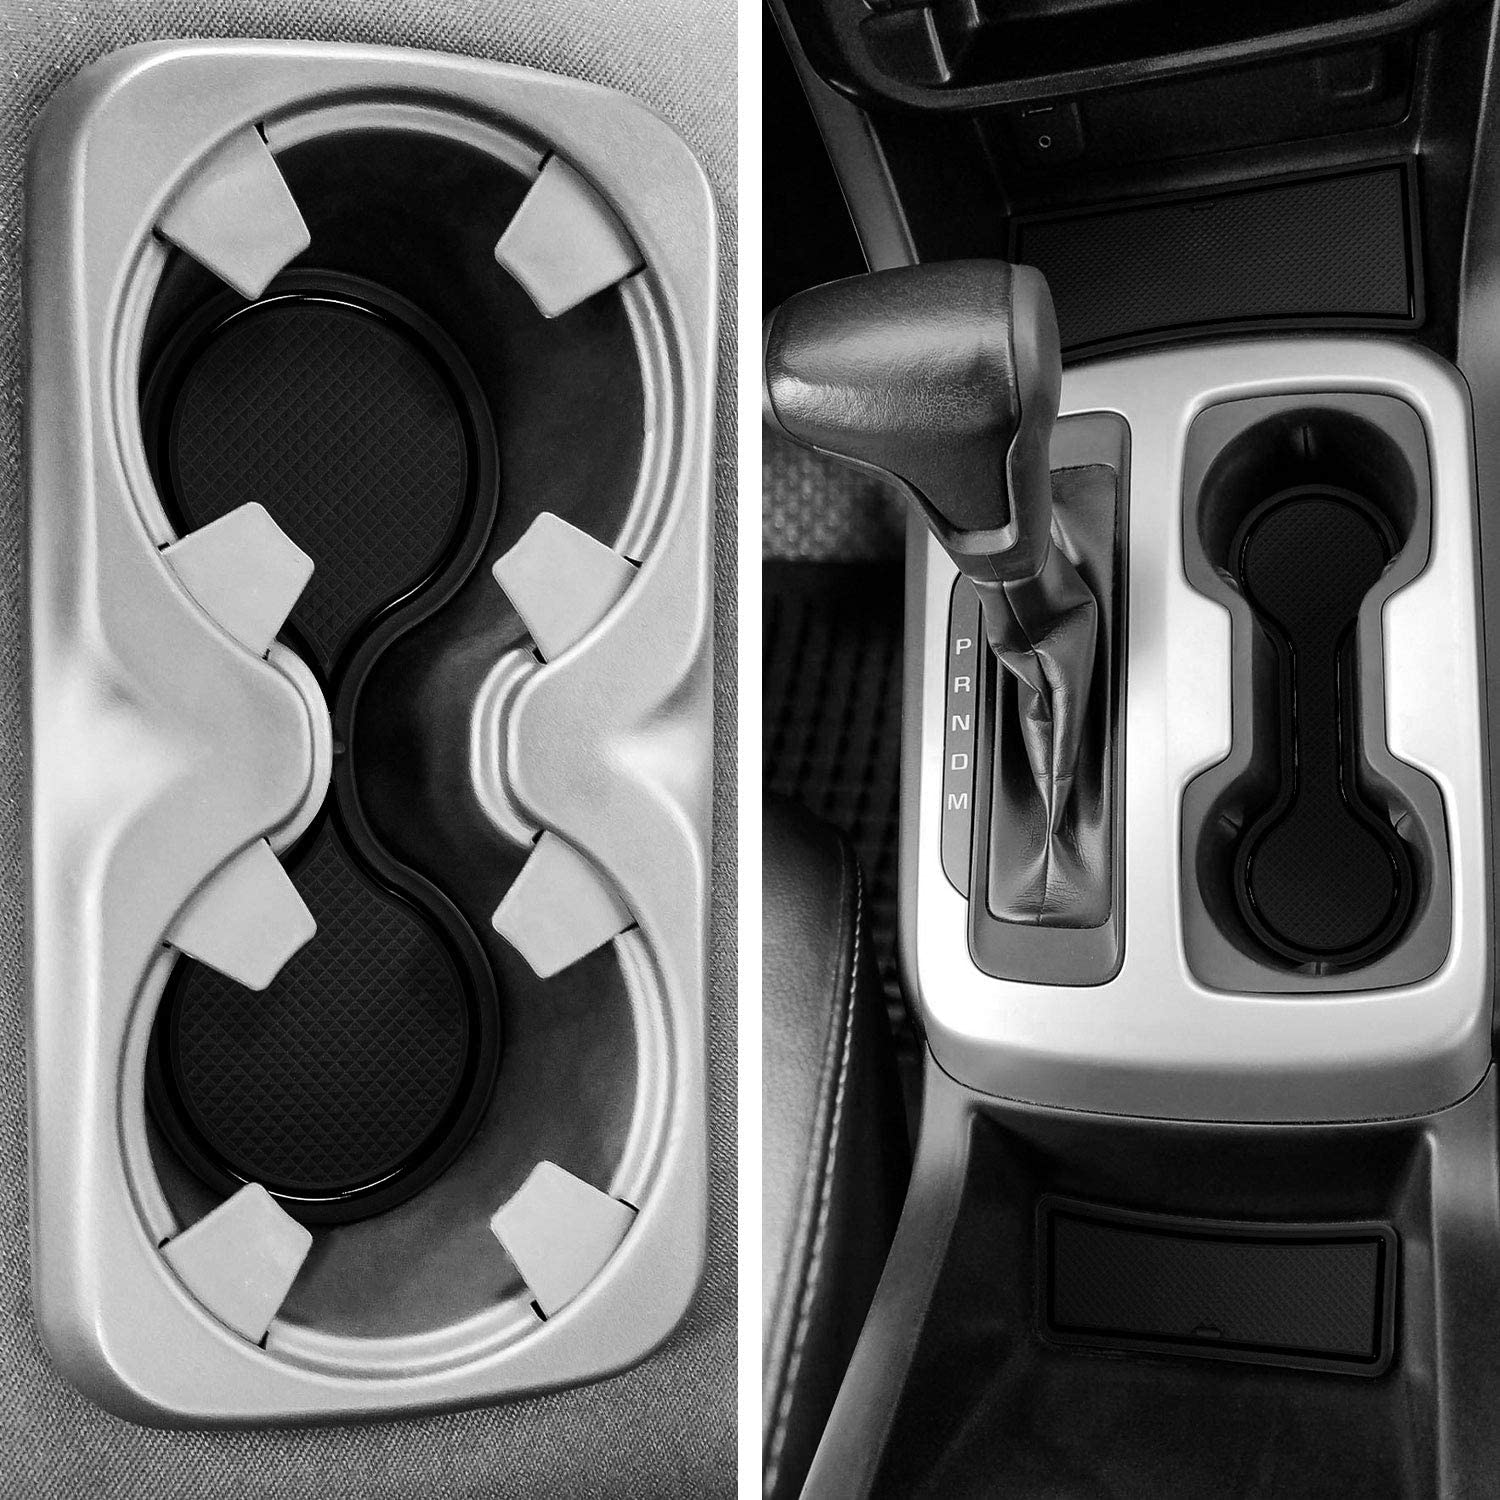 Solid Black and Door Pocket Inserts 26-pc Set Console LAIKOU for Chevy Colorado and GMC Canyon 2015 2016 2017 2018 2019 2020 Custom Liner Accessories Premium Cup Holder